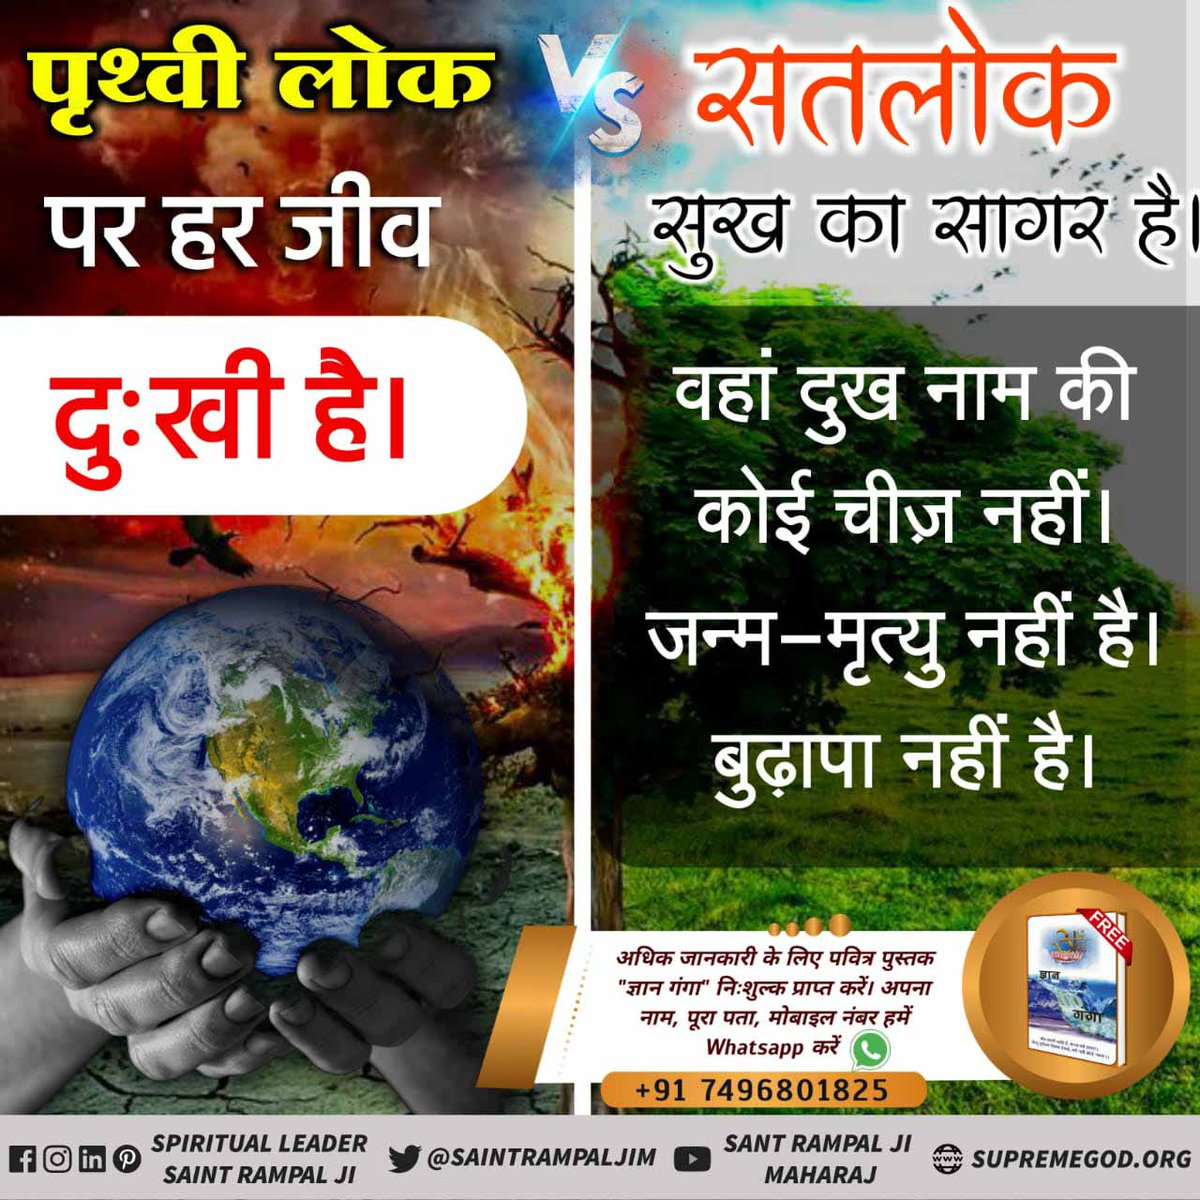 SATLOK  In satlok, there is constant supreme Peace & happiness. VS EARTH There is not even a trace of peace and comfort in this kaal Brahm's lok. @SaintRampalJiM Visit Satlok Ashram YouTube Channel #अमरलोक_VS_मृत्युलोक #tuesdaymotivations